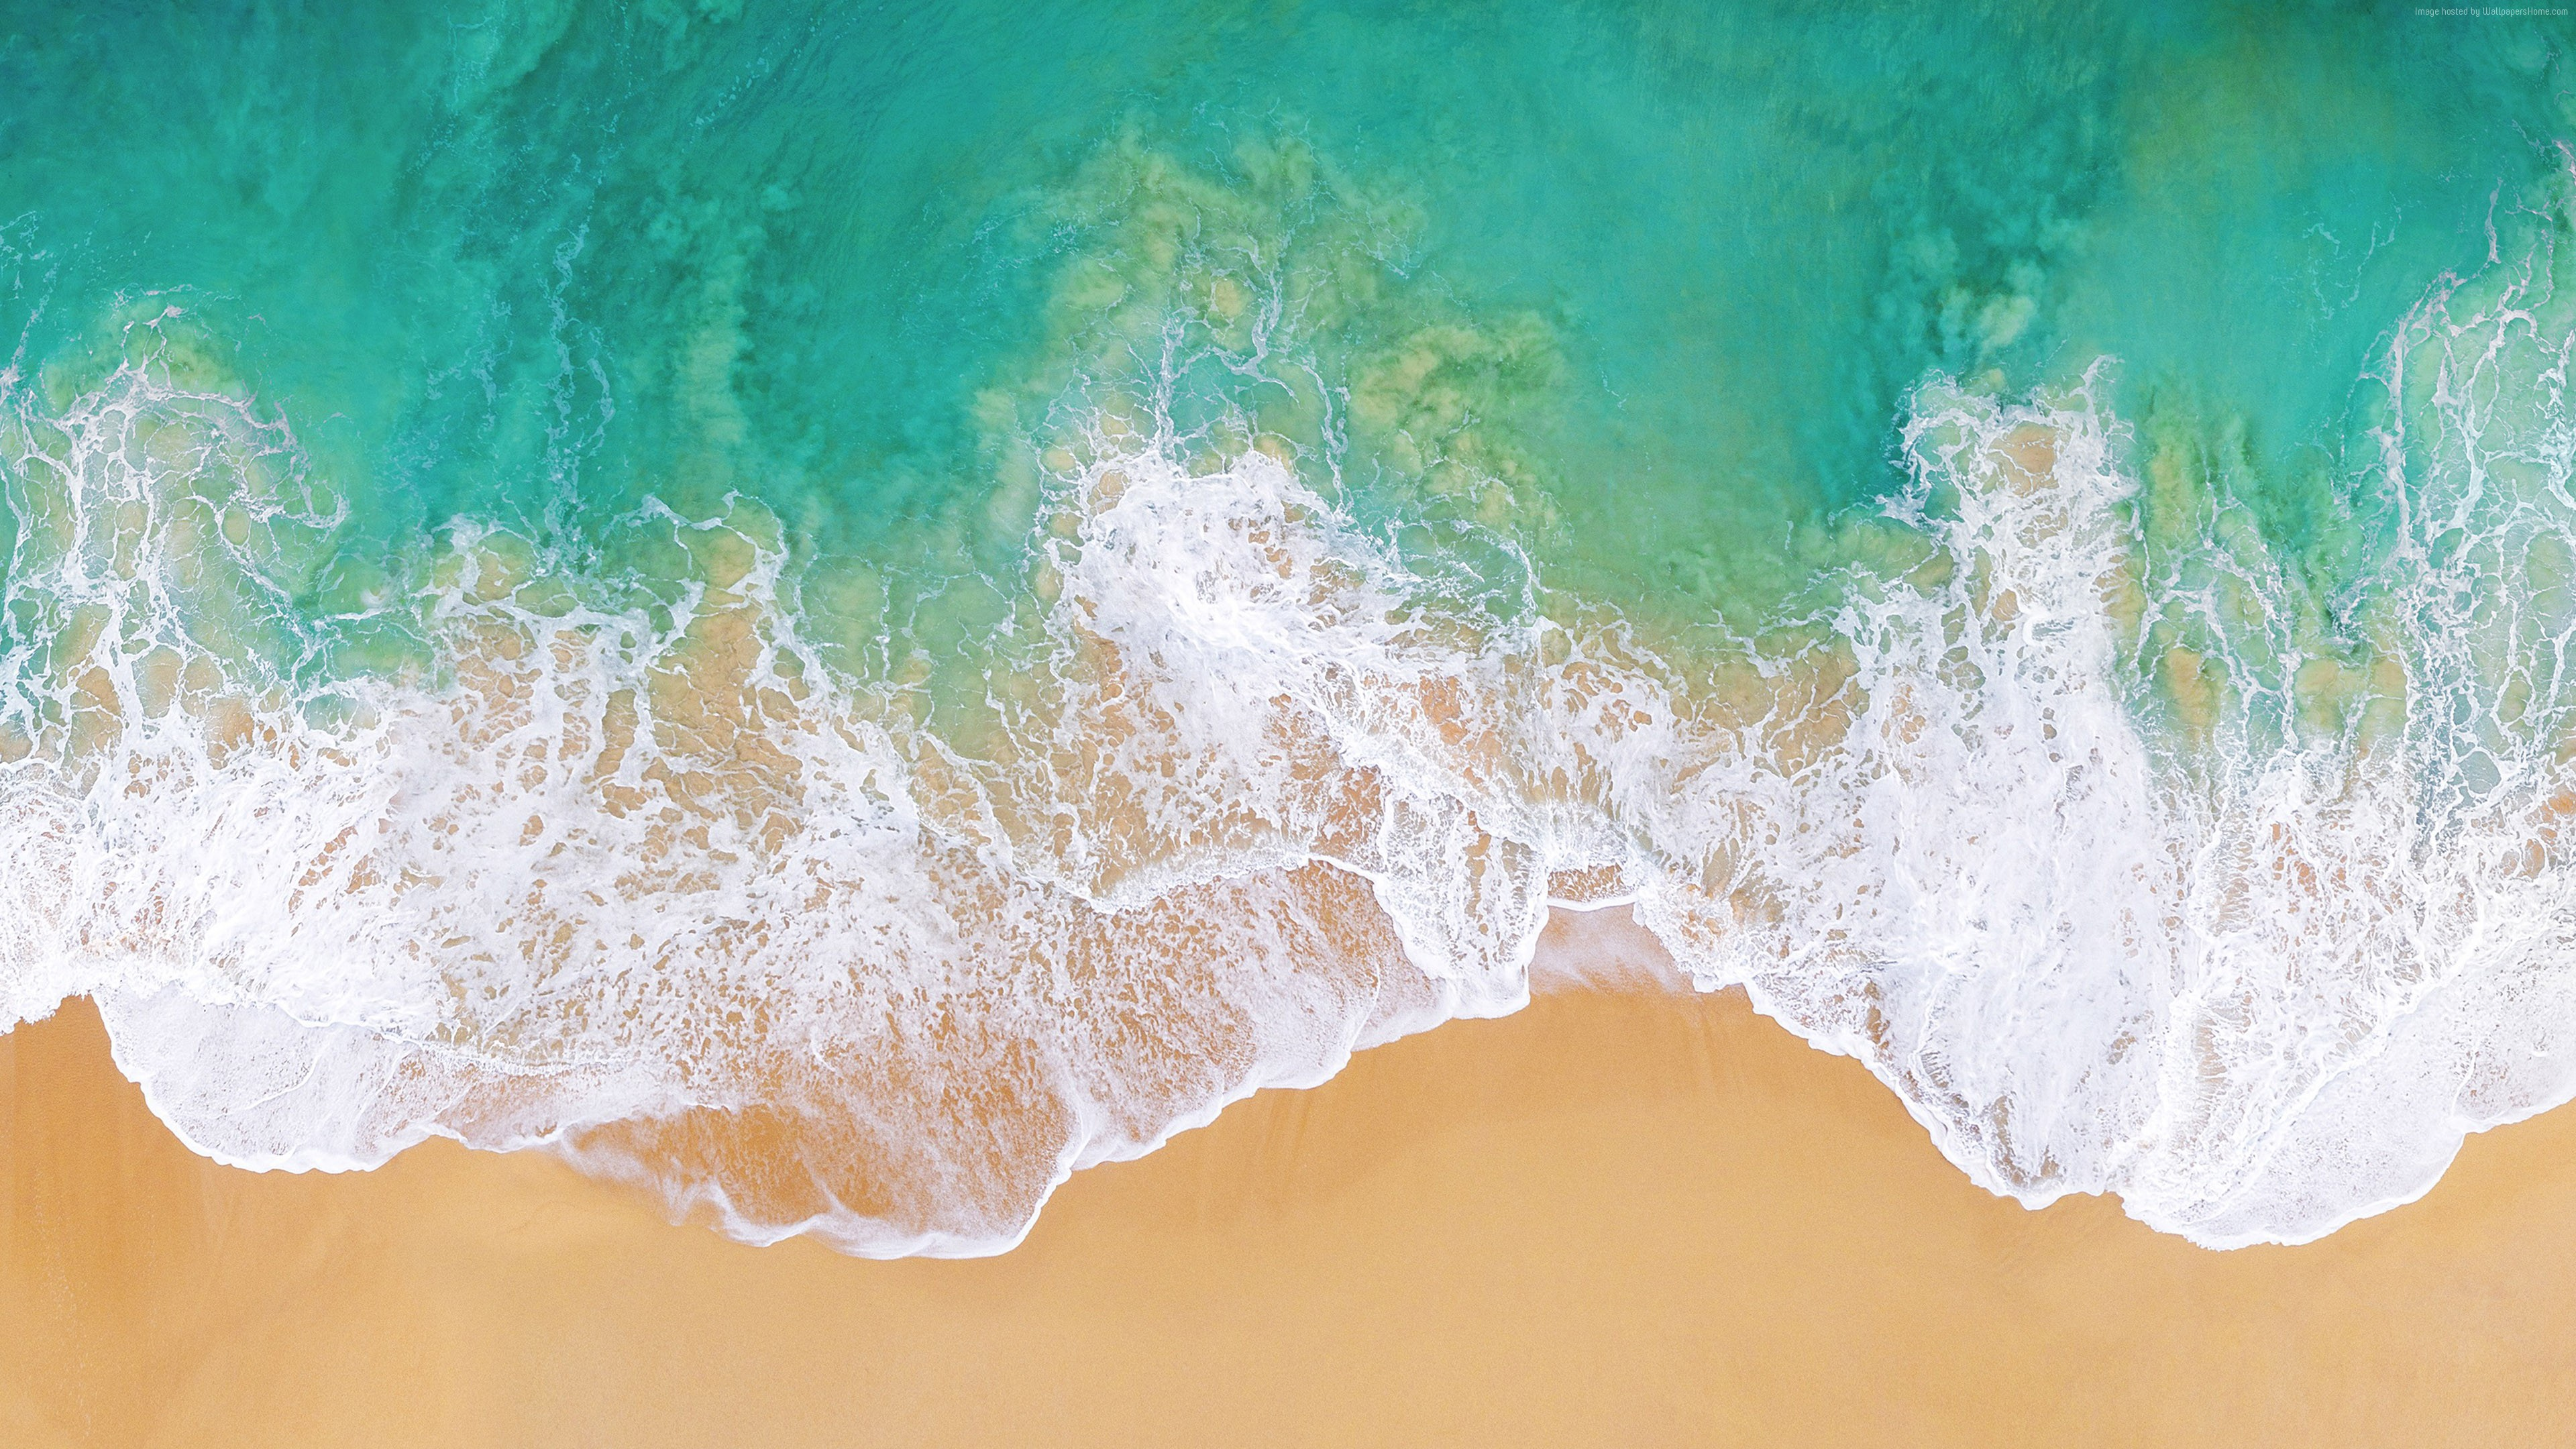 Wallpaper iOS 11, 4k, 5k, beach, ocean, Abstract